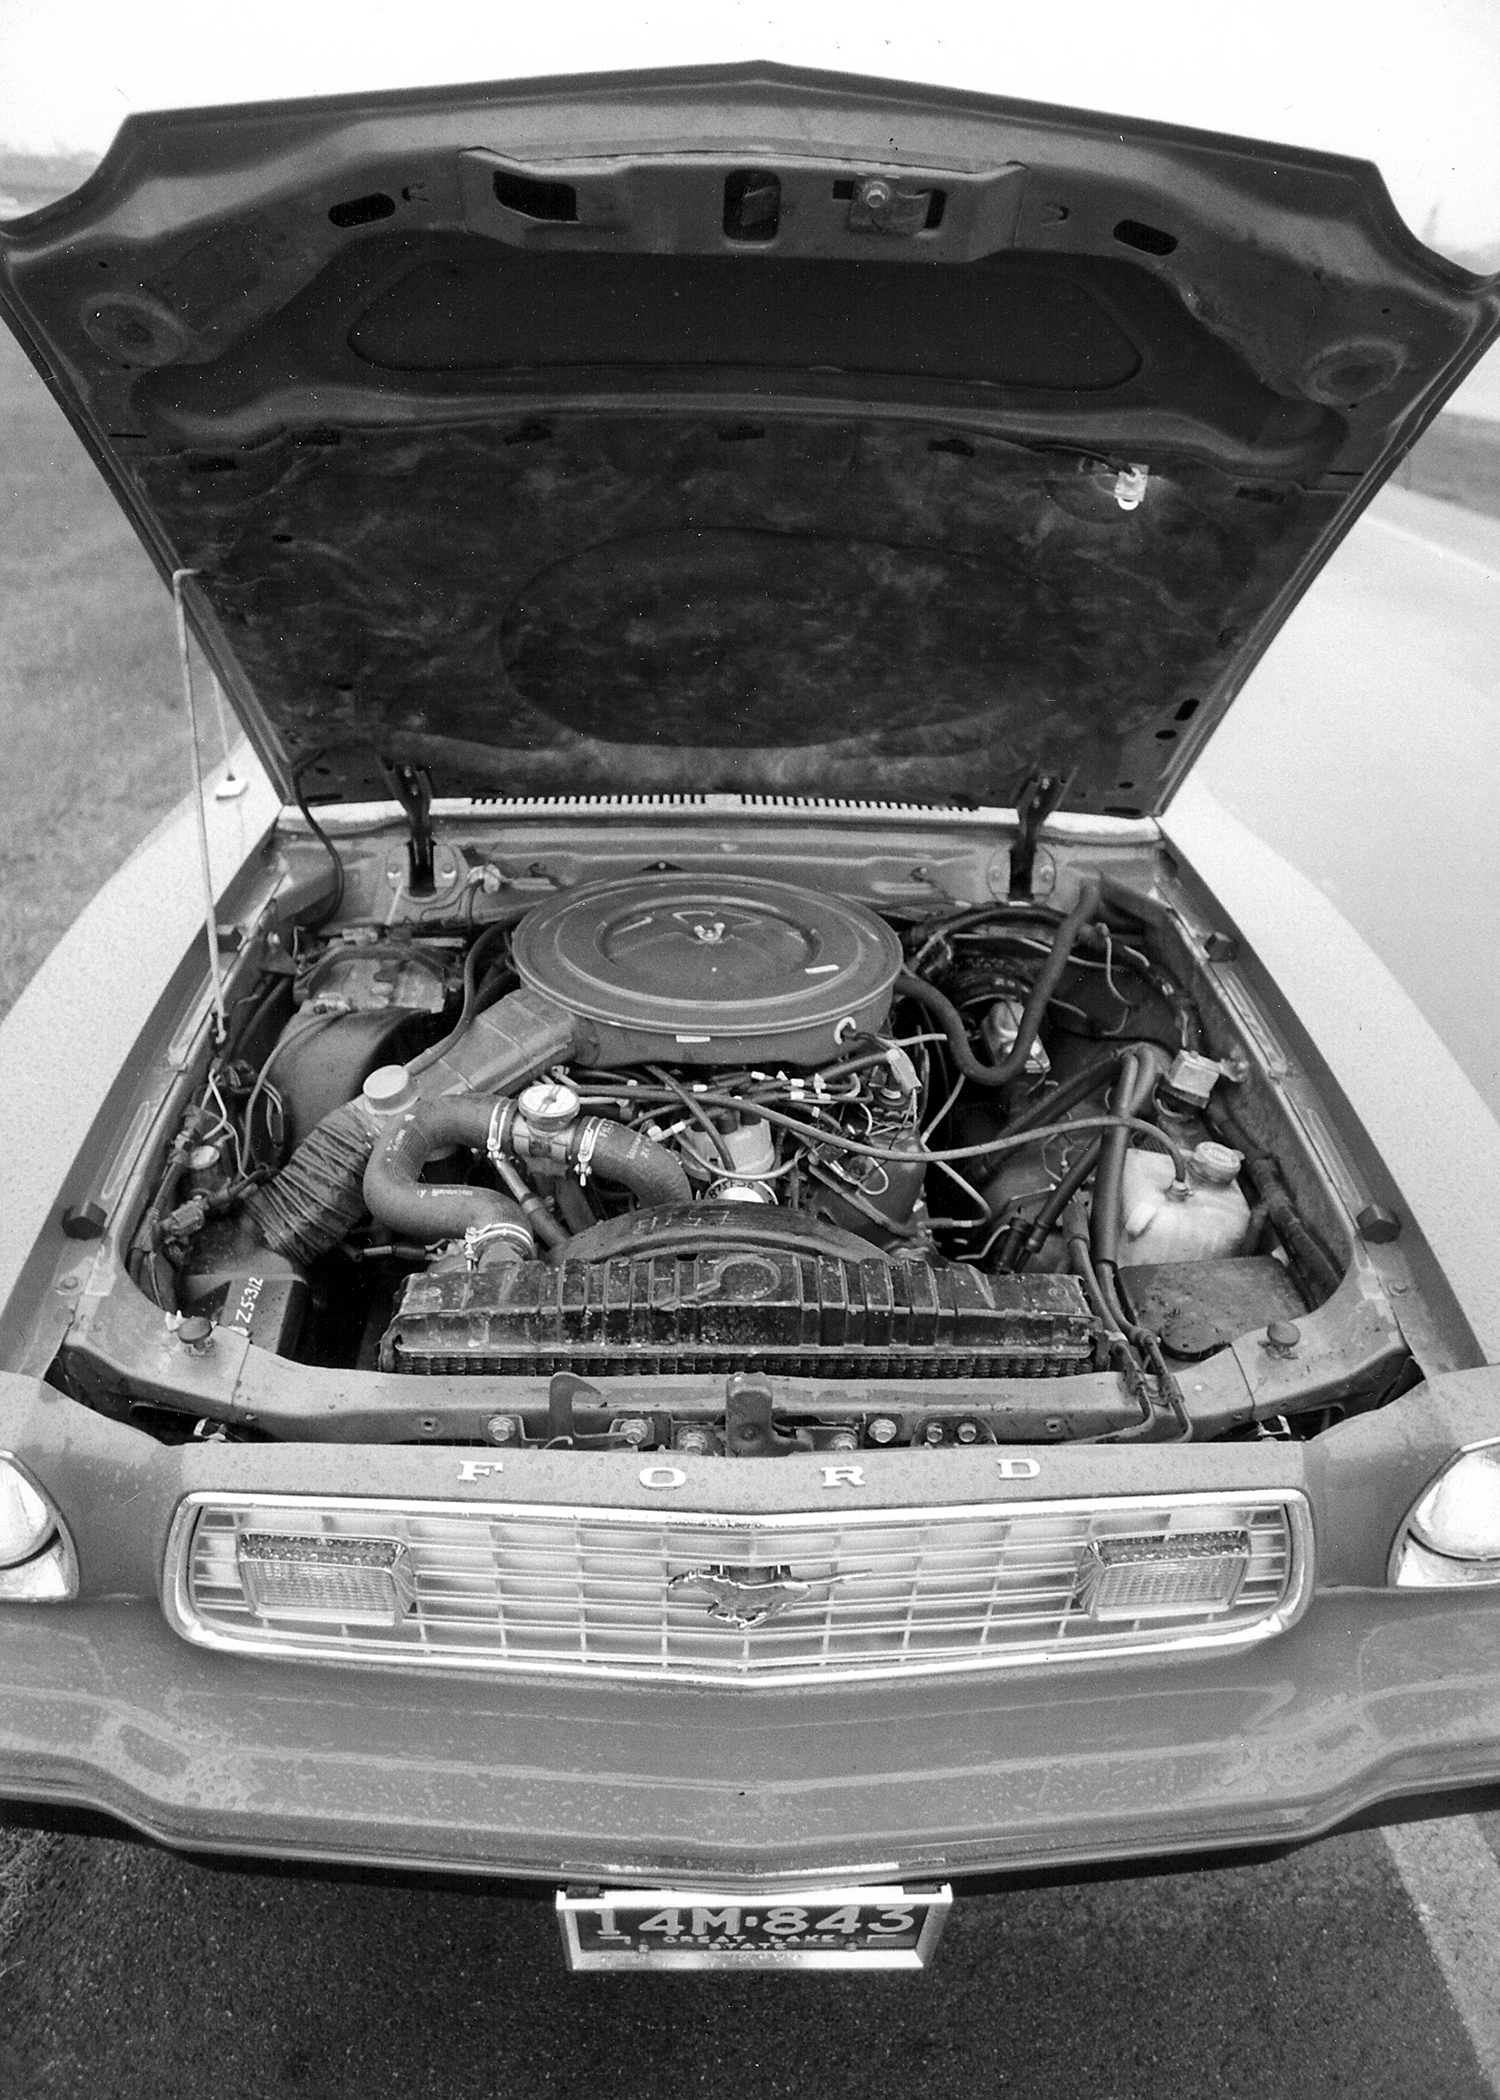 The Deuce got V-8 power for 1975, yet with mind-numbing emissions controls, including a catalytic converter and single exhaust. Although the 302-2V offered peppy performance in a featherweight Mustang, it was abundantly clear the 1960s were over.